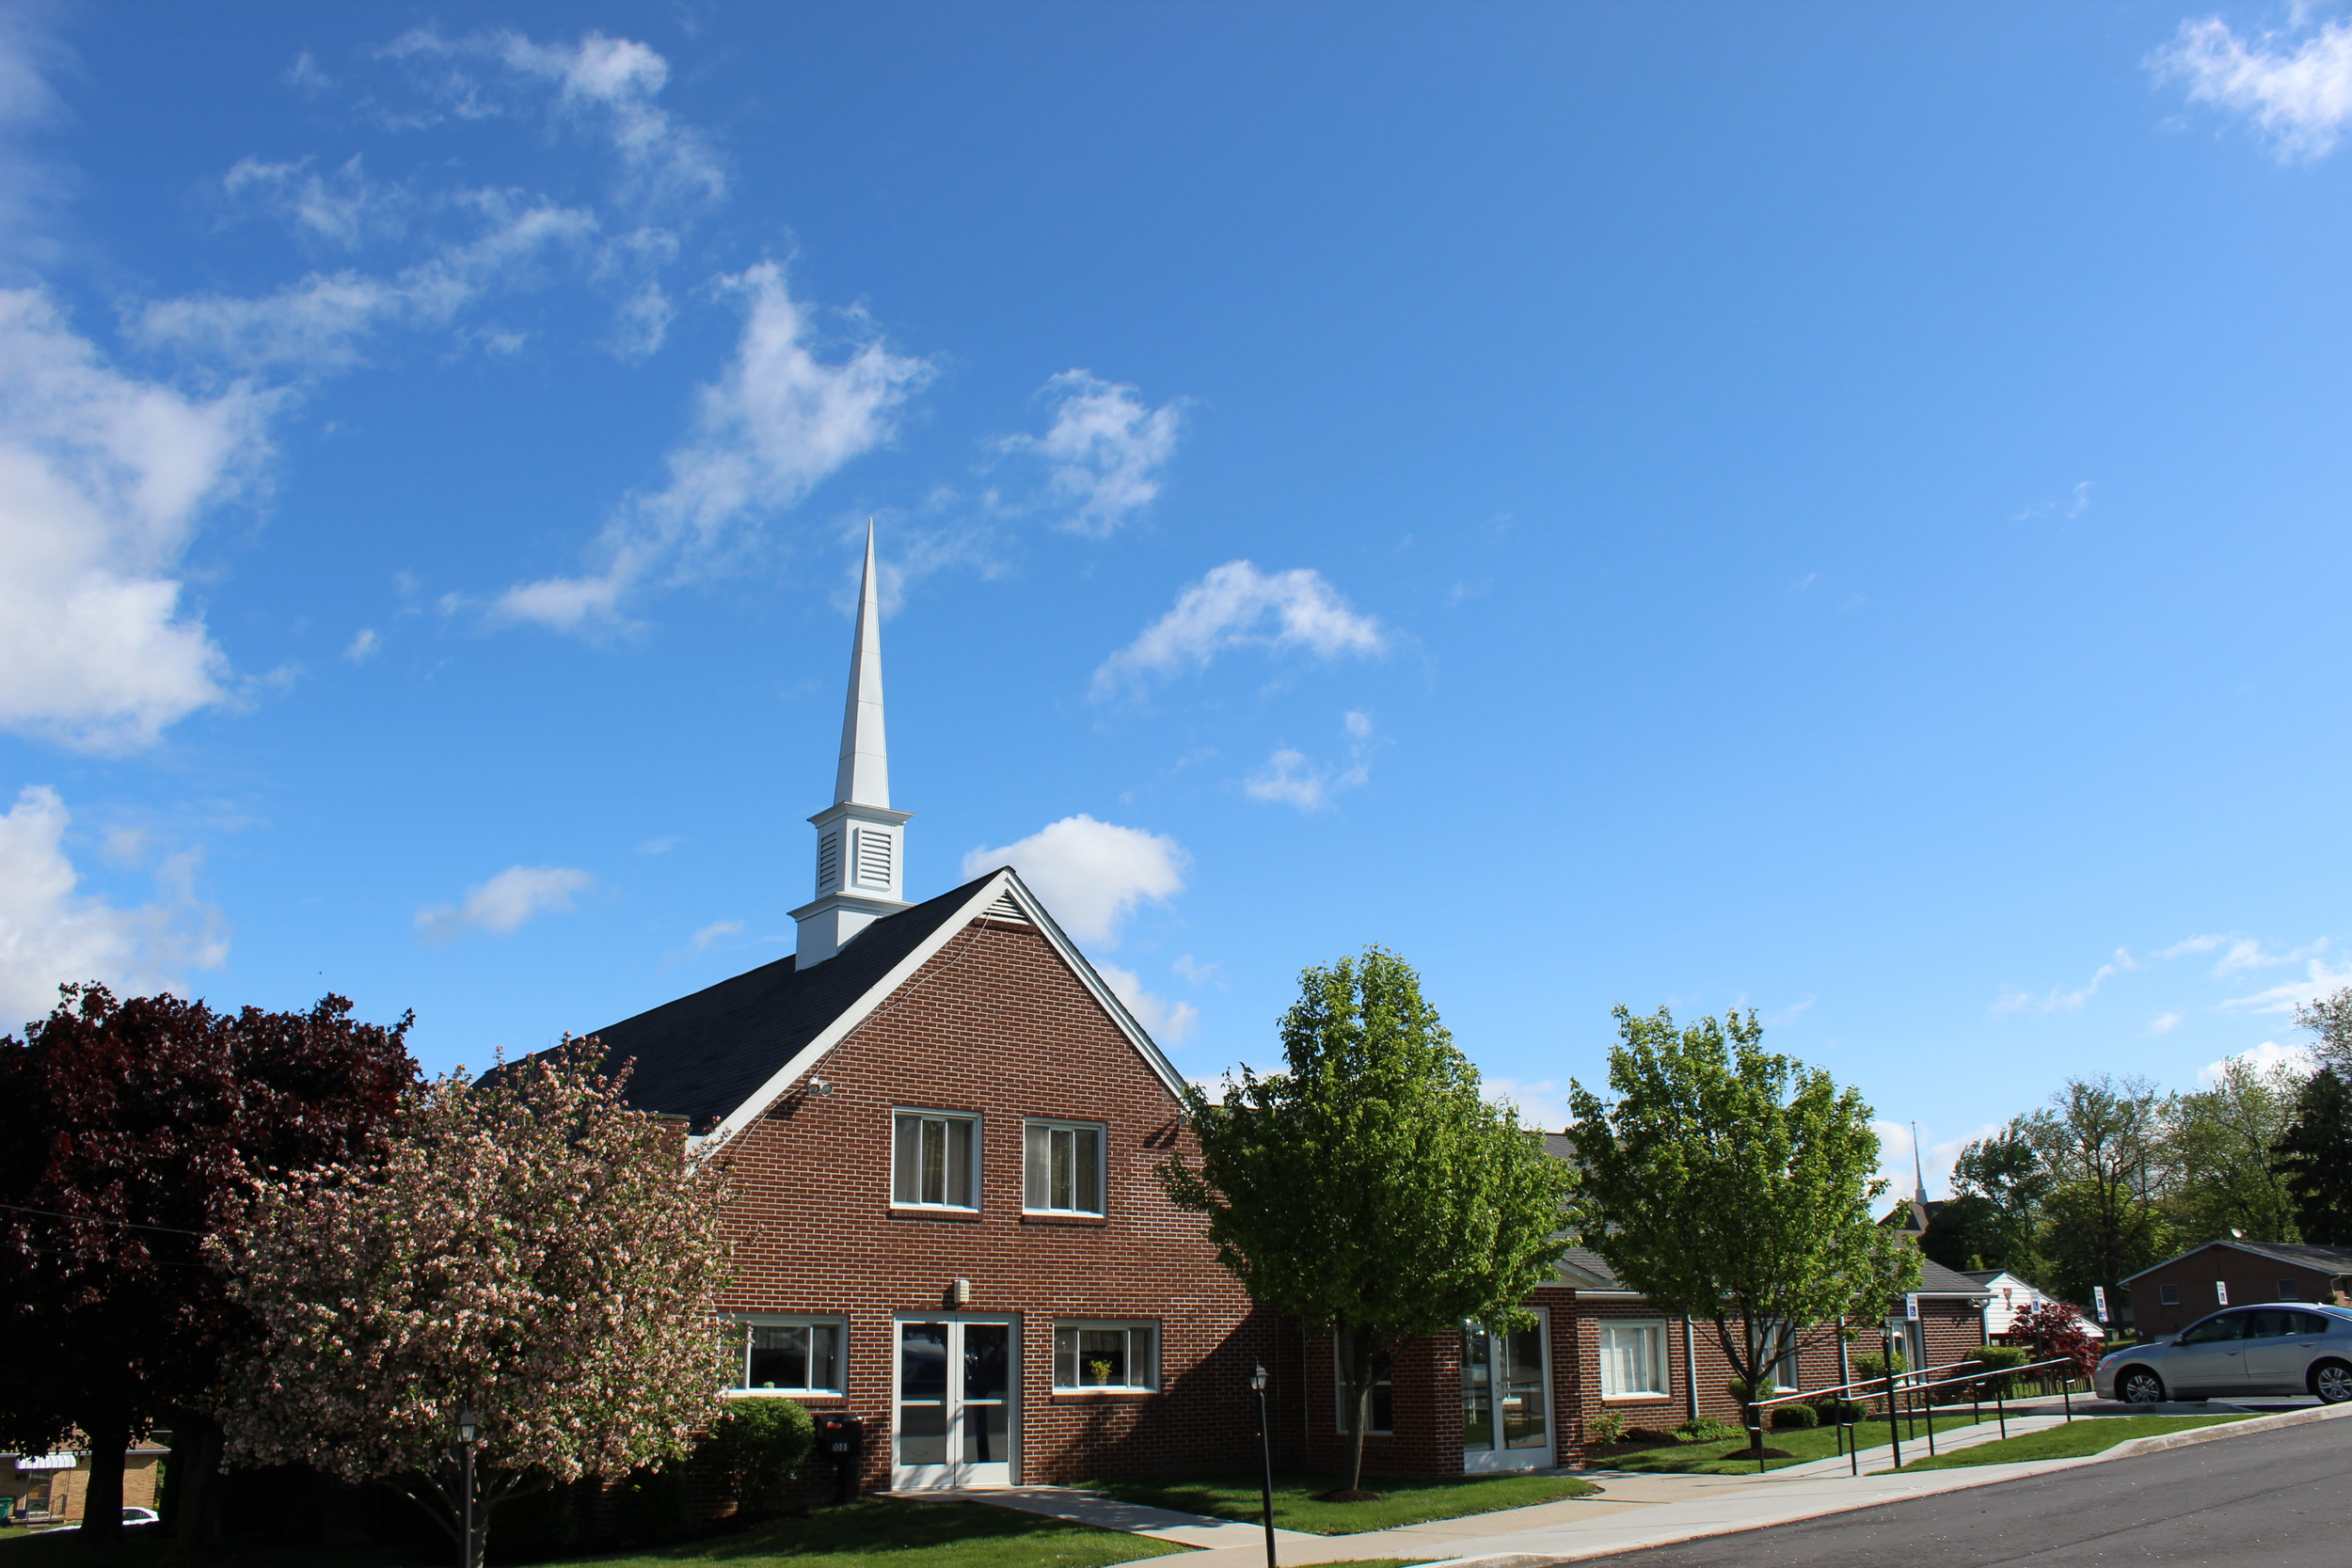 The Building and the Church